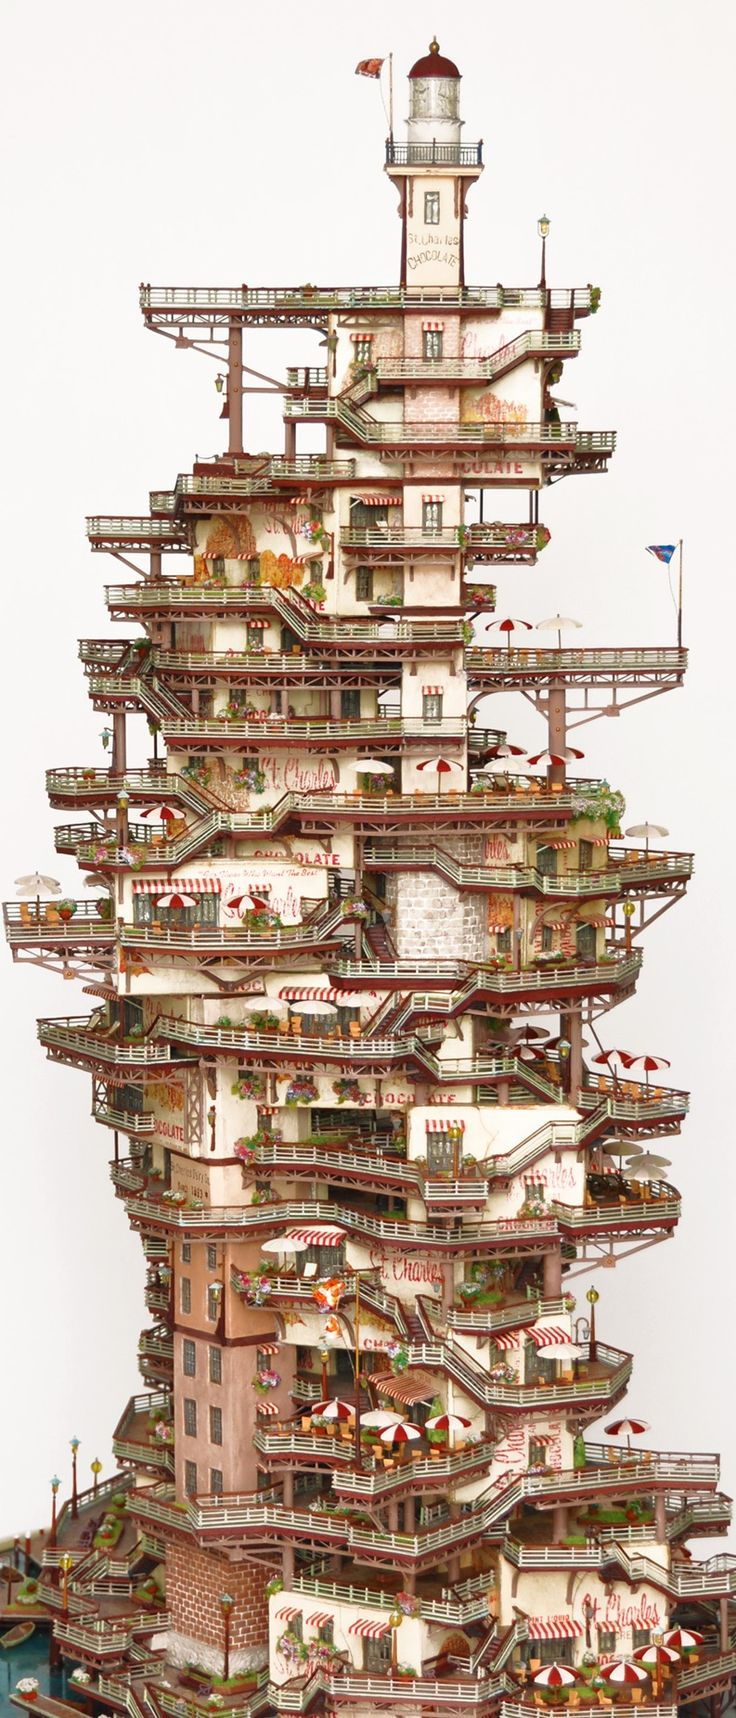 Mineatures and Bonsai Trees: the work of Takanori Aiba, a Japanese wizard of miniature artistry with a specialty in making Bonsai treehouses and tiny tourist resorts from a parallel universe.